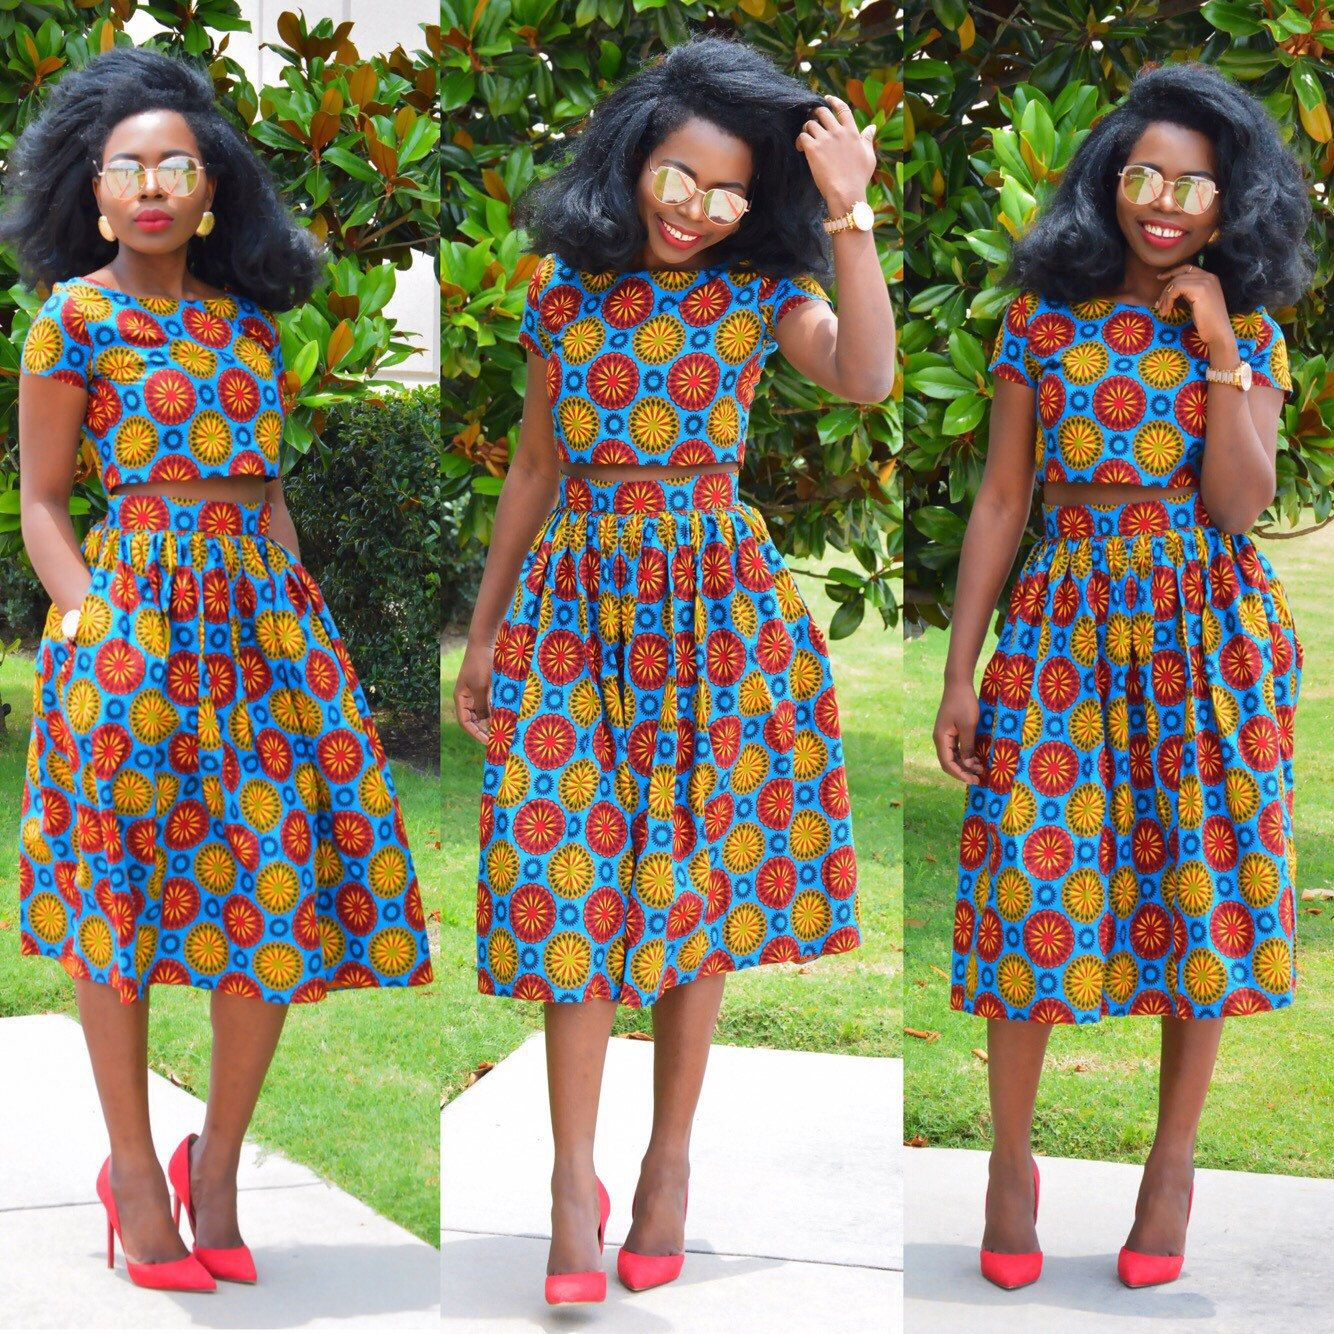 New Ankara Styles Siks Nd Tops: Ankara Skirt Crop Top And Skirt